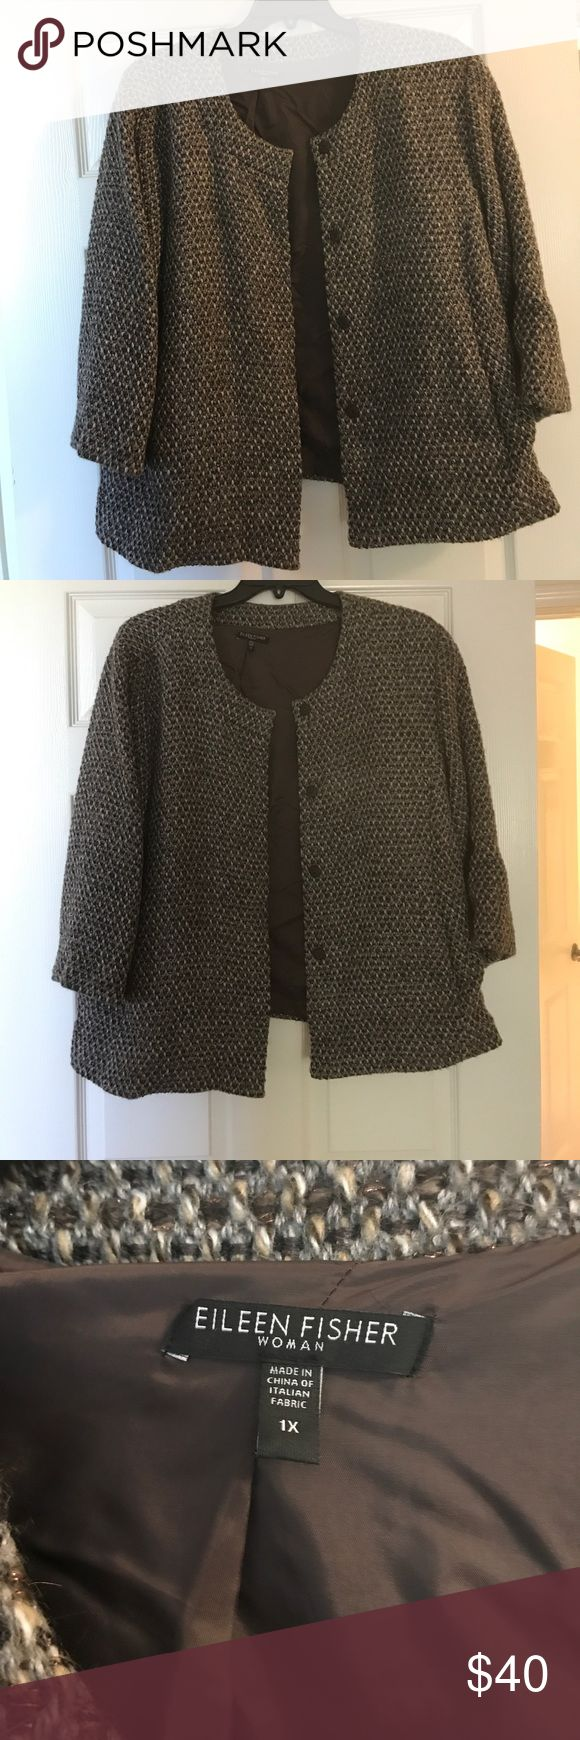 Plus size Eileen Fisher blazer Gorgeous tweed blazer with the classic Eileen Fisher clean lines. Sleeves are above the wrist length. Blazer color is brown and grey with a smattering of brown gold sparkly thread mixed in as shown in photos. Two pockets. Fully lined. Dry clean. Eileen Fisher Jackets & Coats Blazers